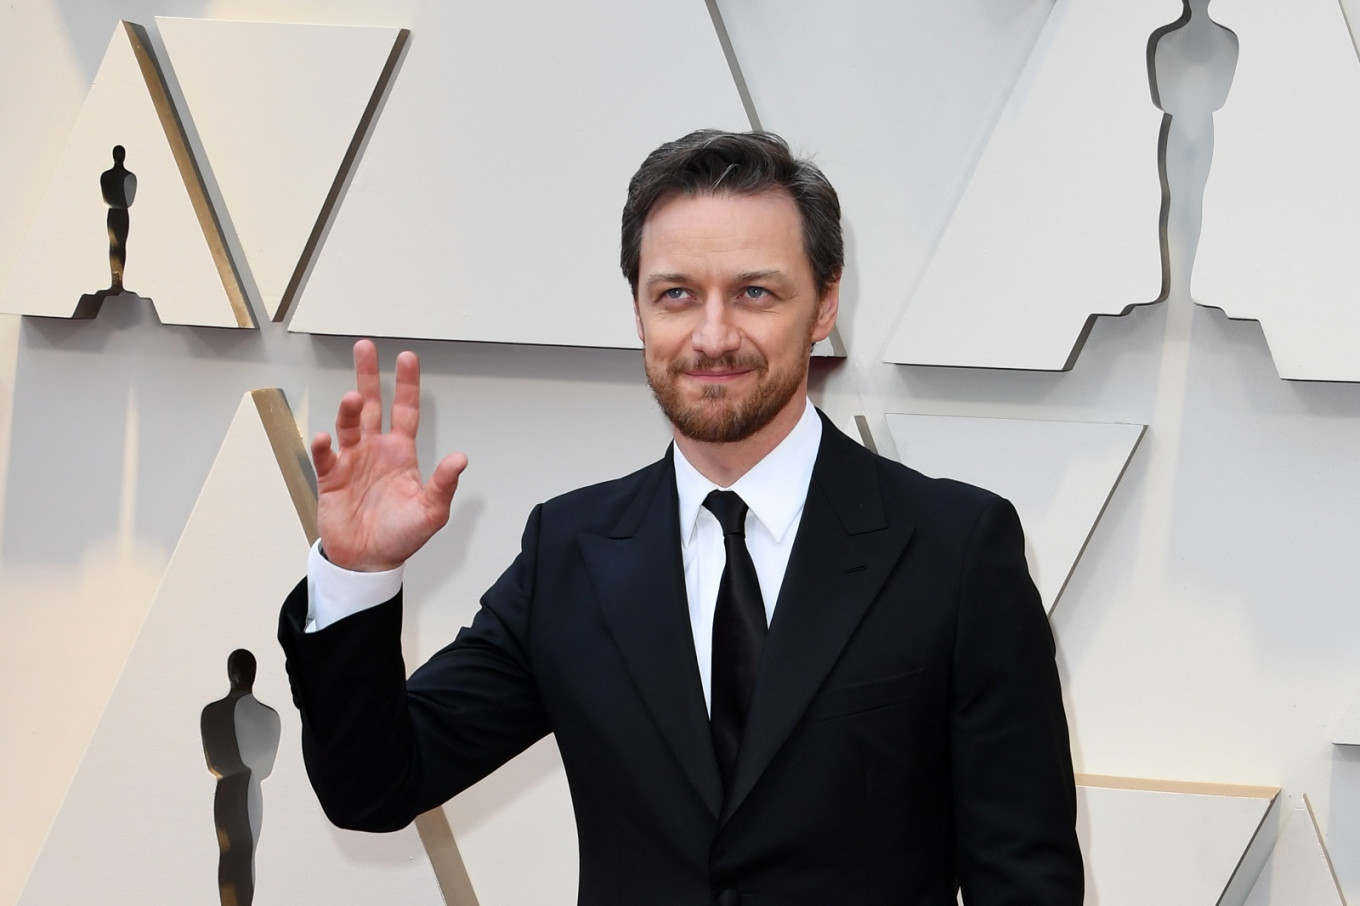 James McAvoy has celebs sign shirt at Oscars for good cause